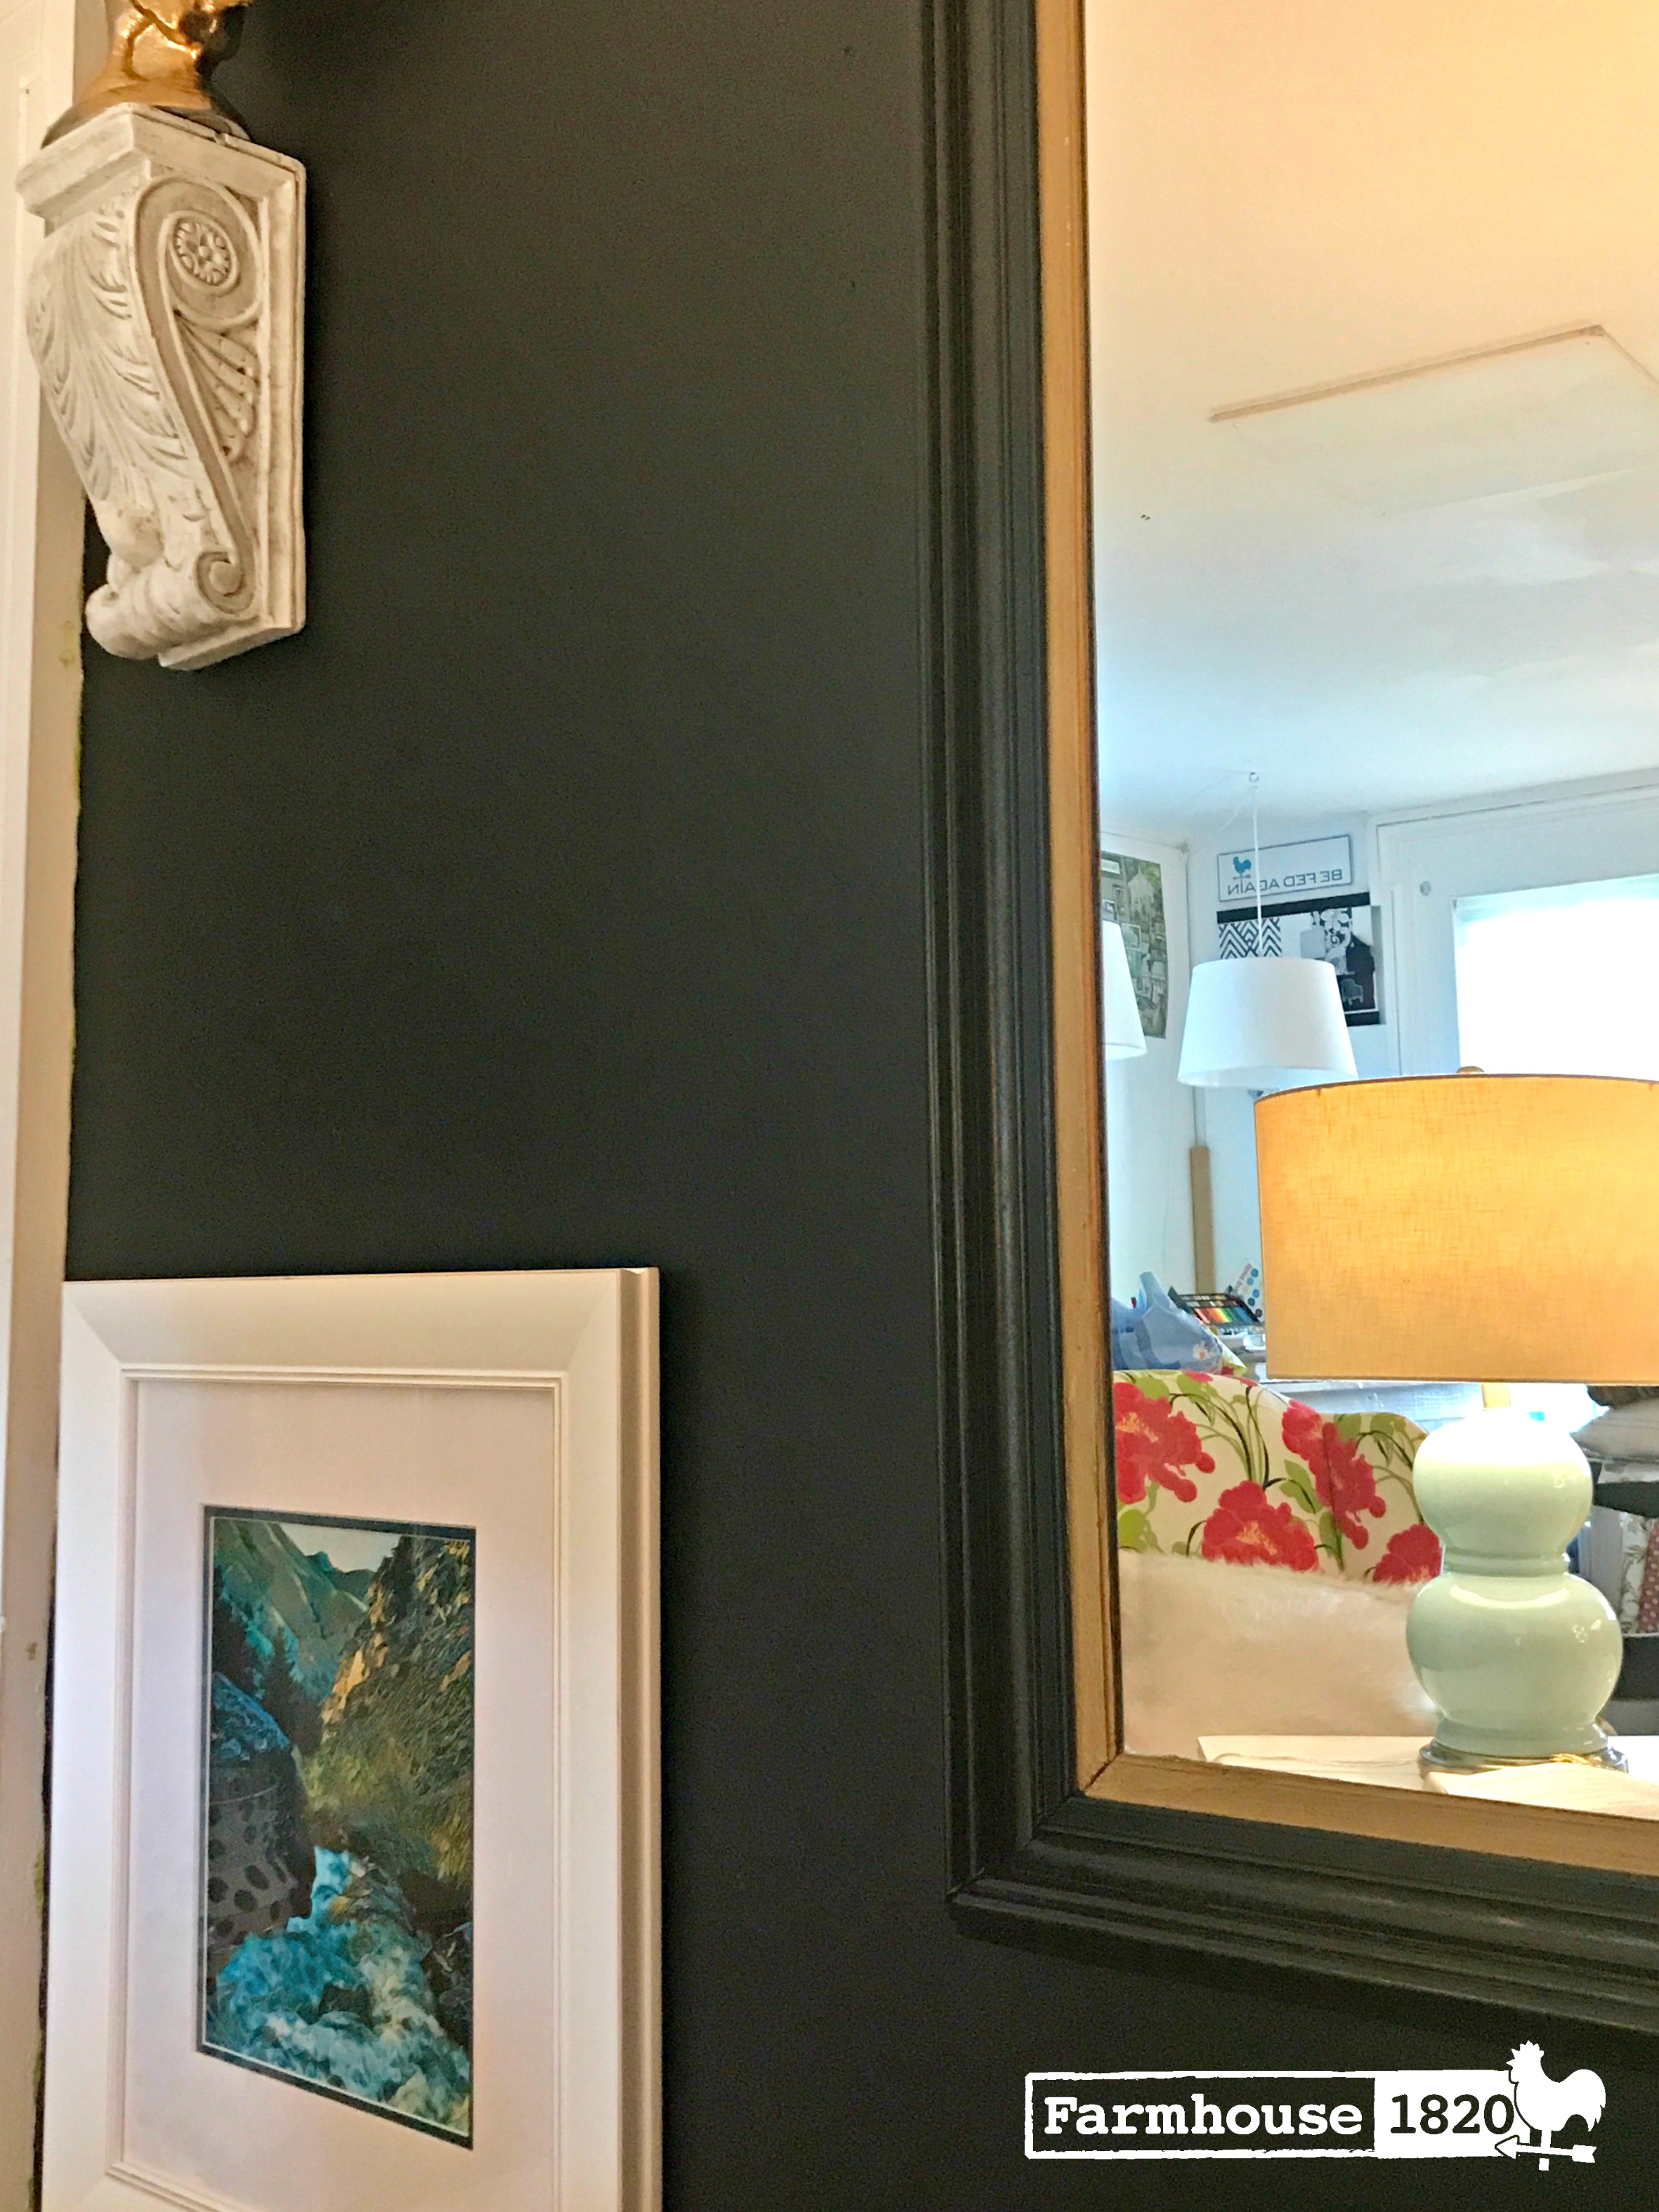 accent wall - using a mirror to bounce light, brightens up a room